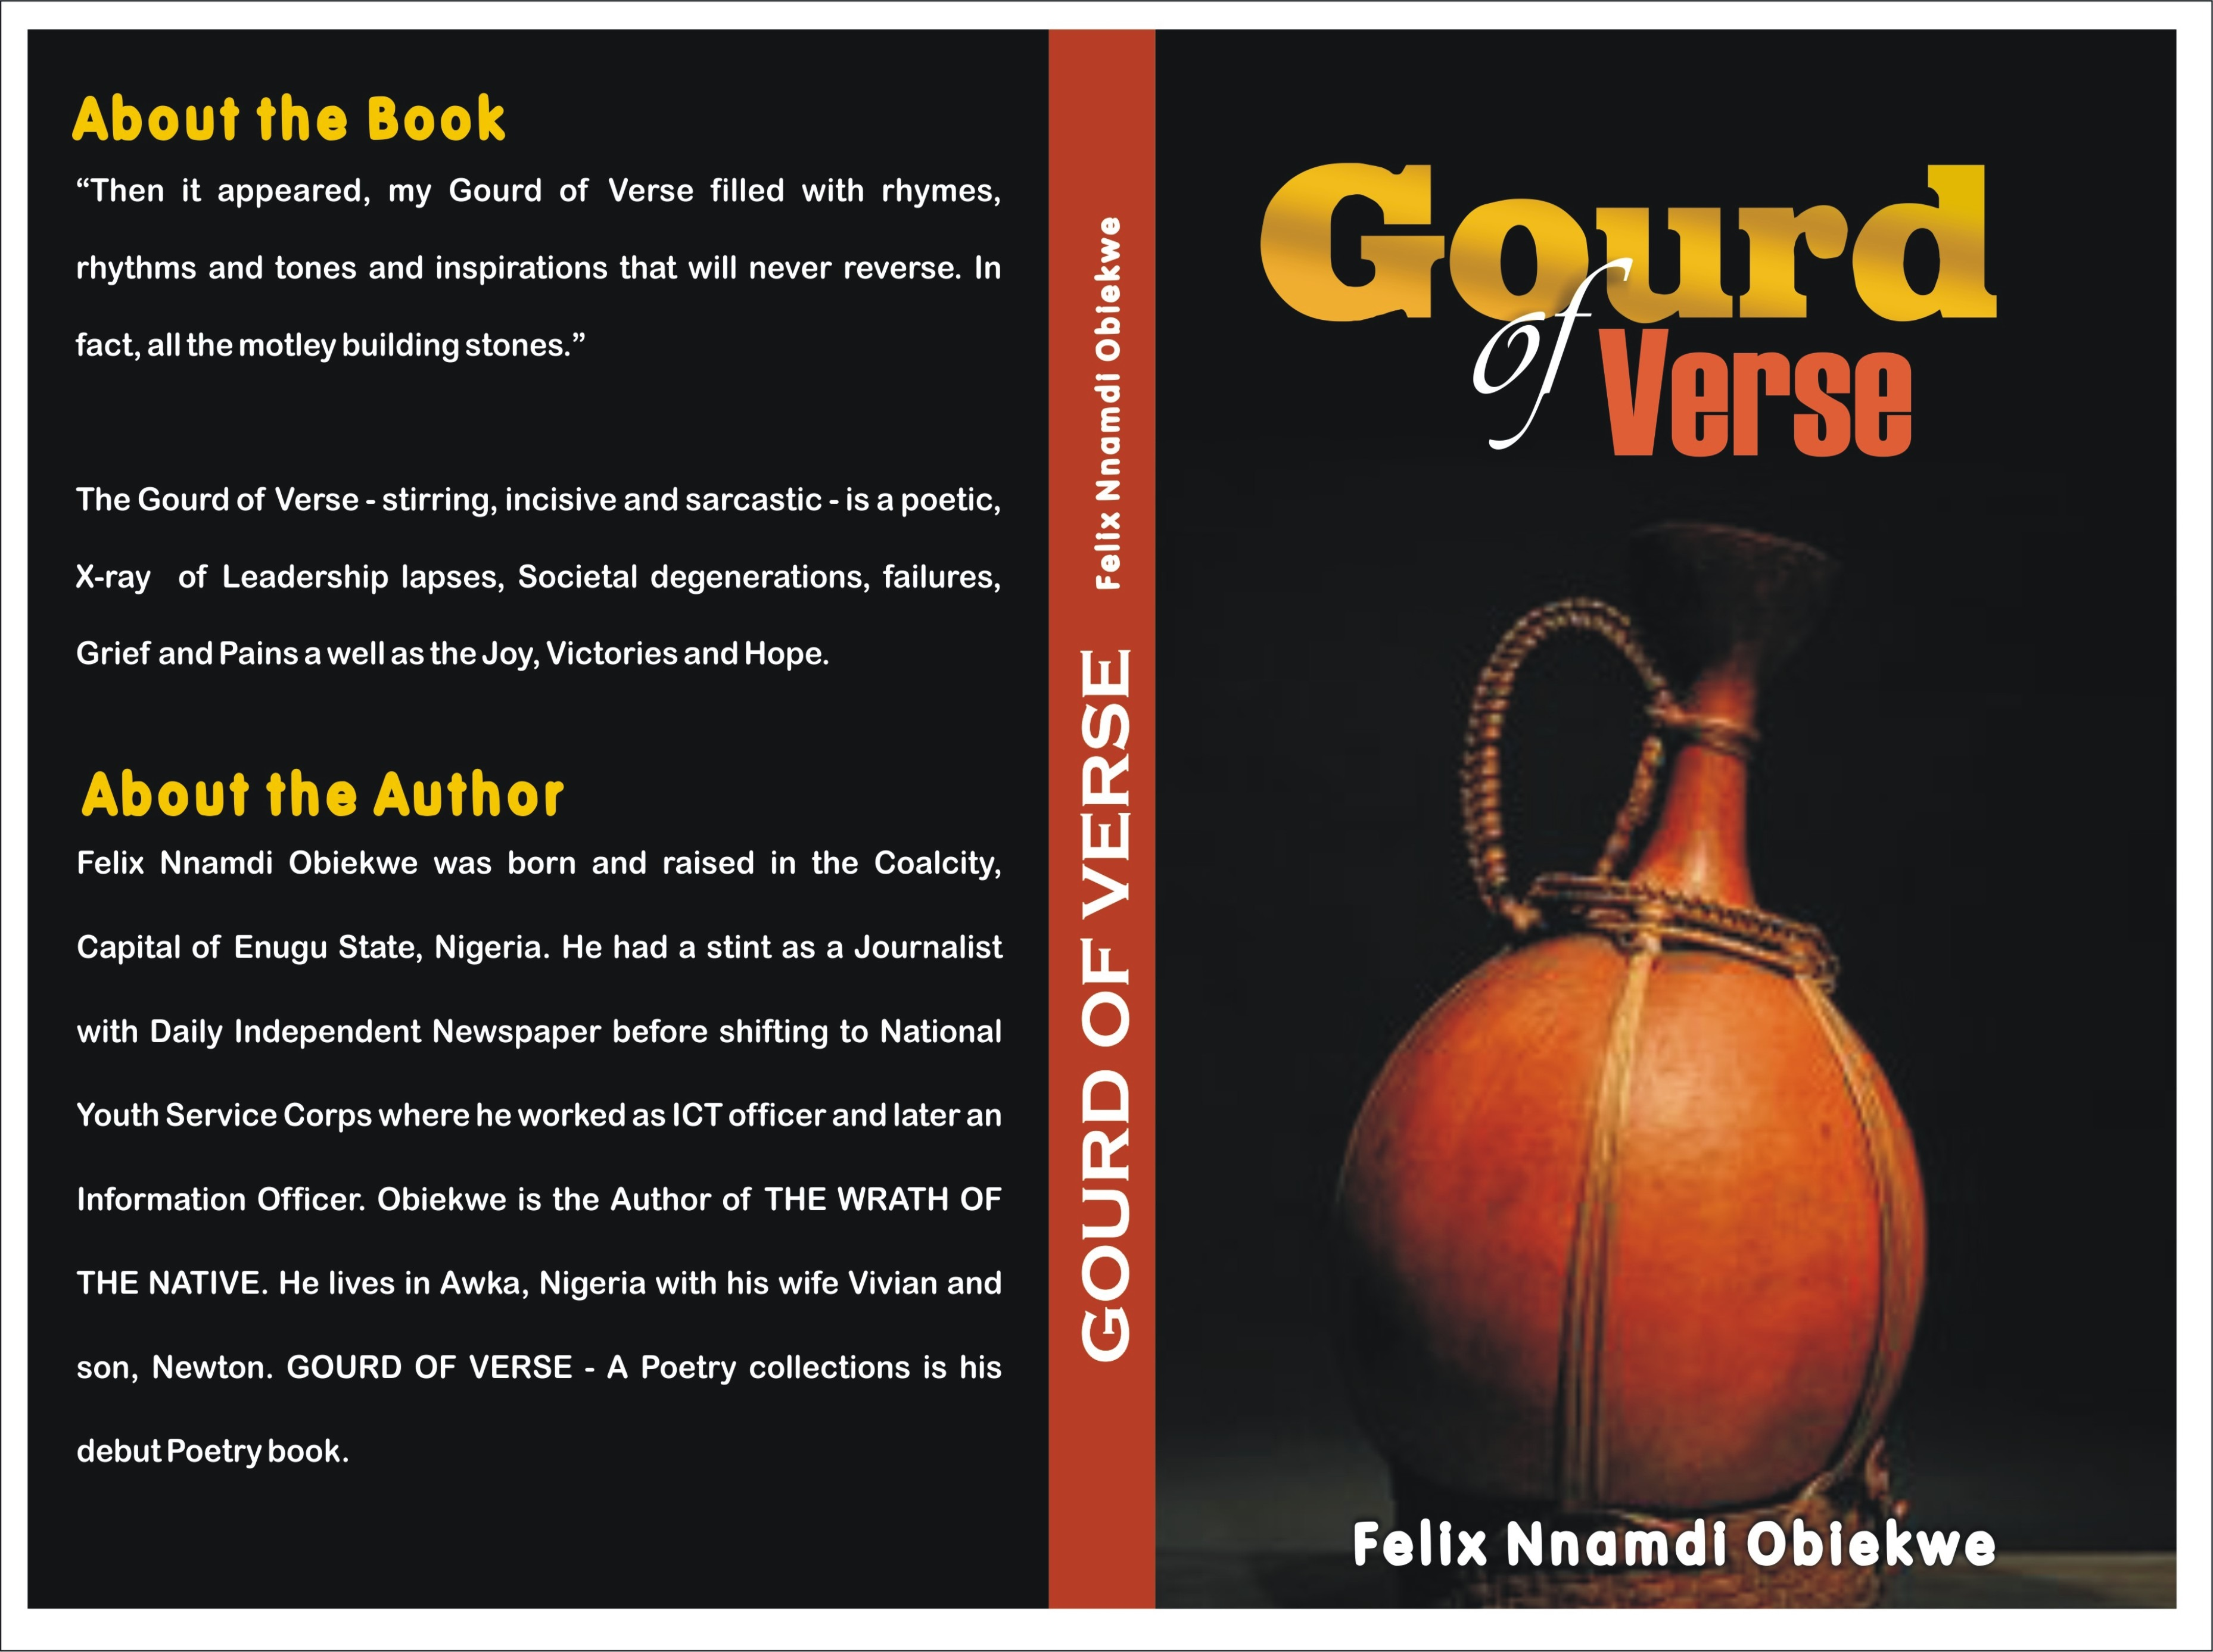 The Gourd of Verse